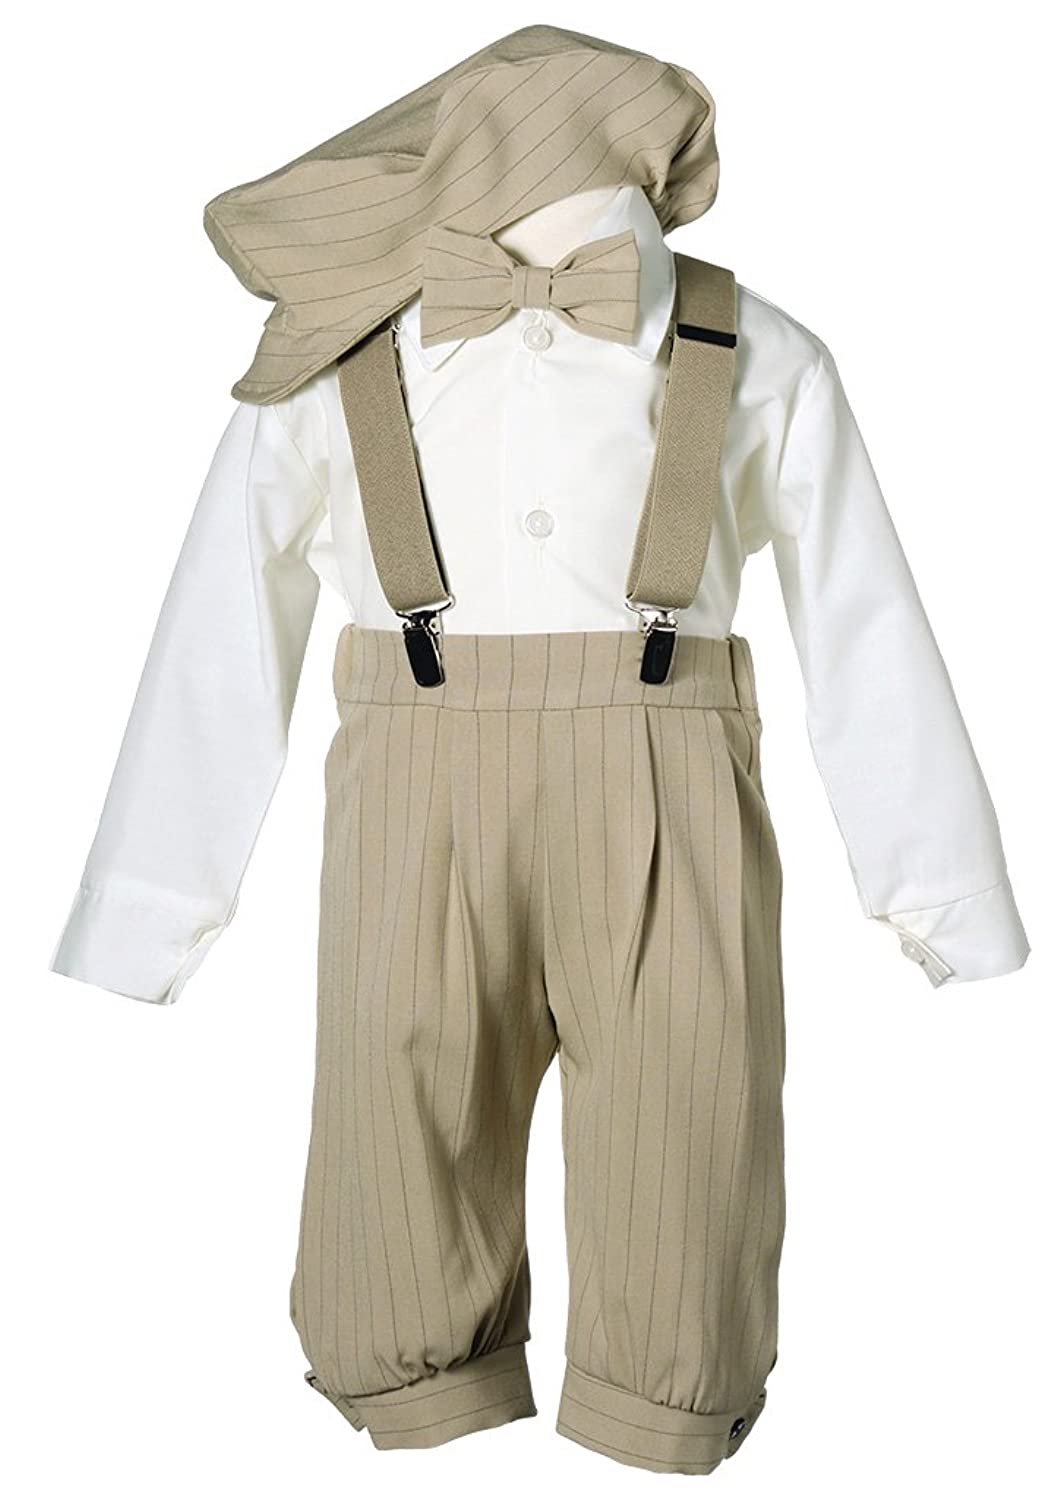 1930s Childrens Fashion: Girls, Boys, Toddler, Baby Costumes Boys Toddler Knicker Set with Suspenders and Hat - Vintage Tan Stripe $42.95 AT vintagedancer.com